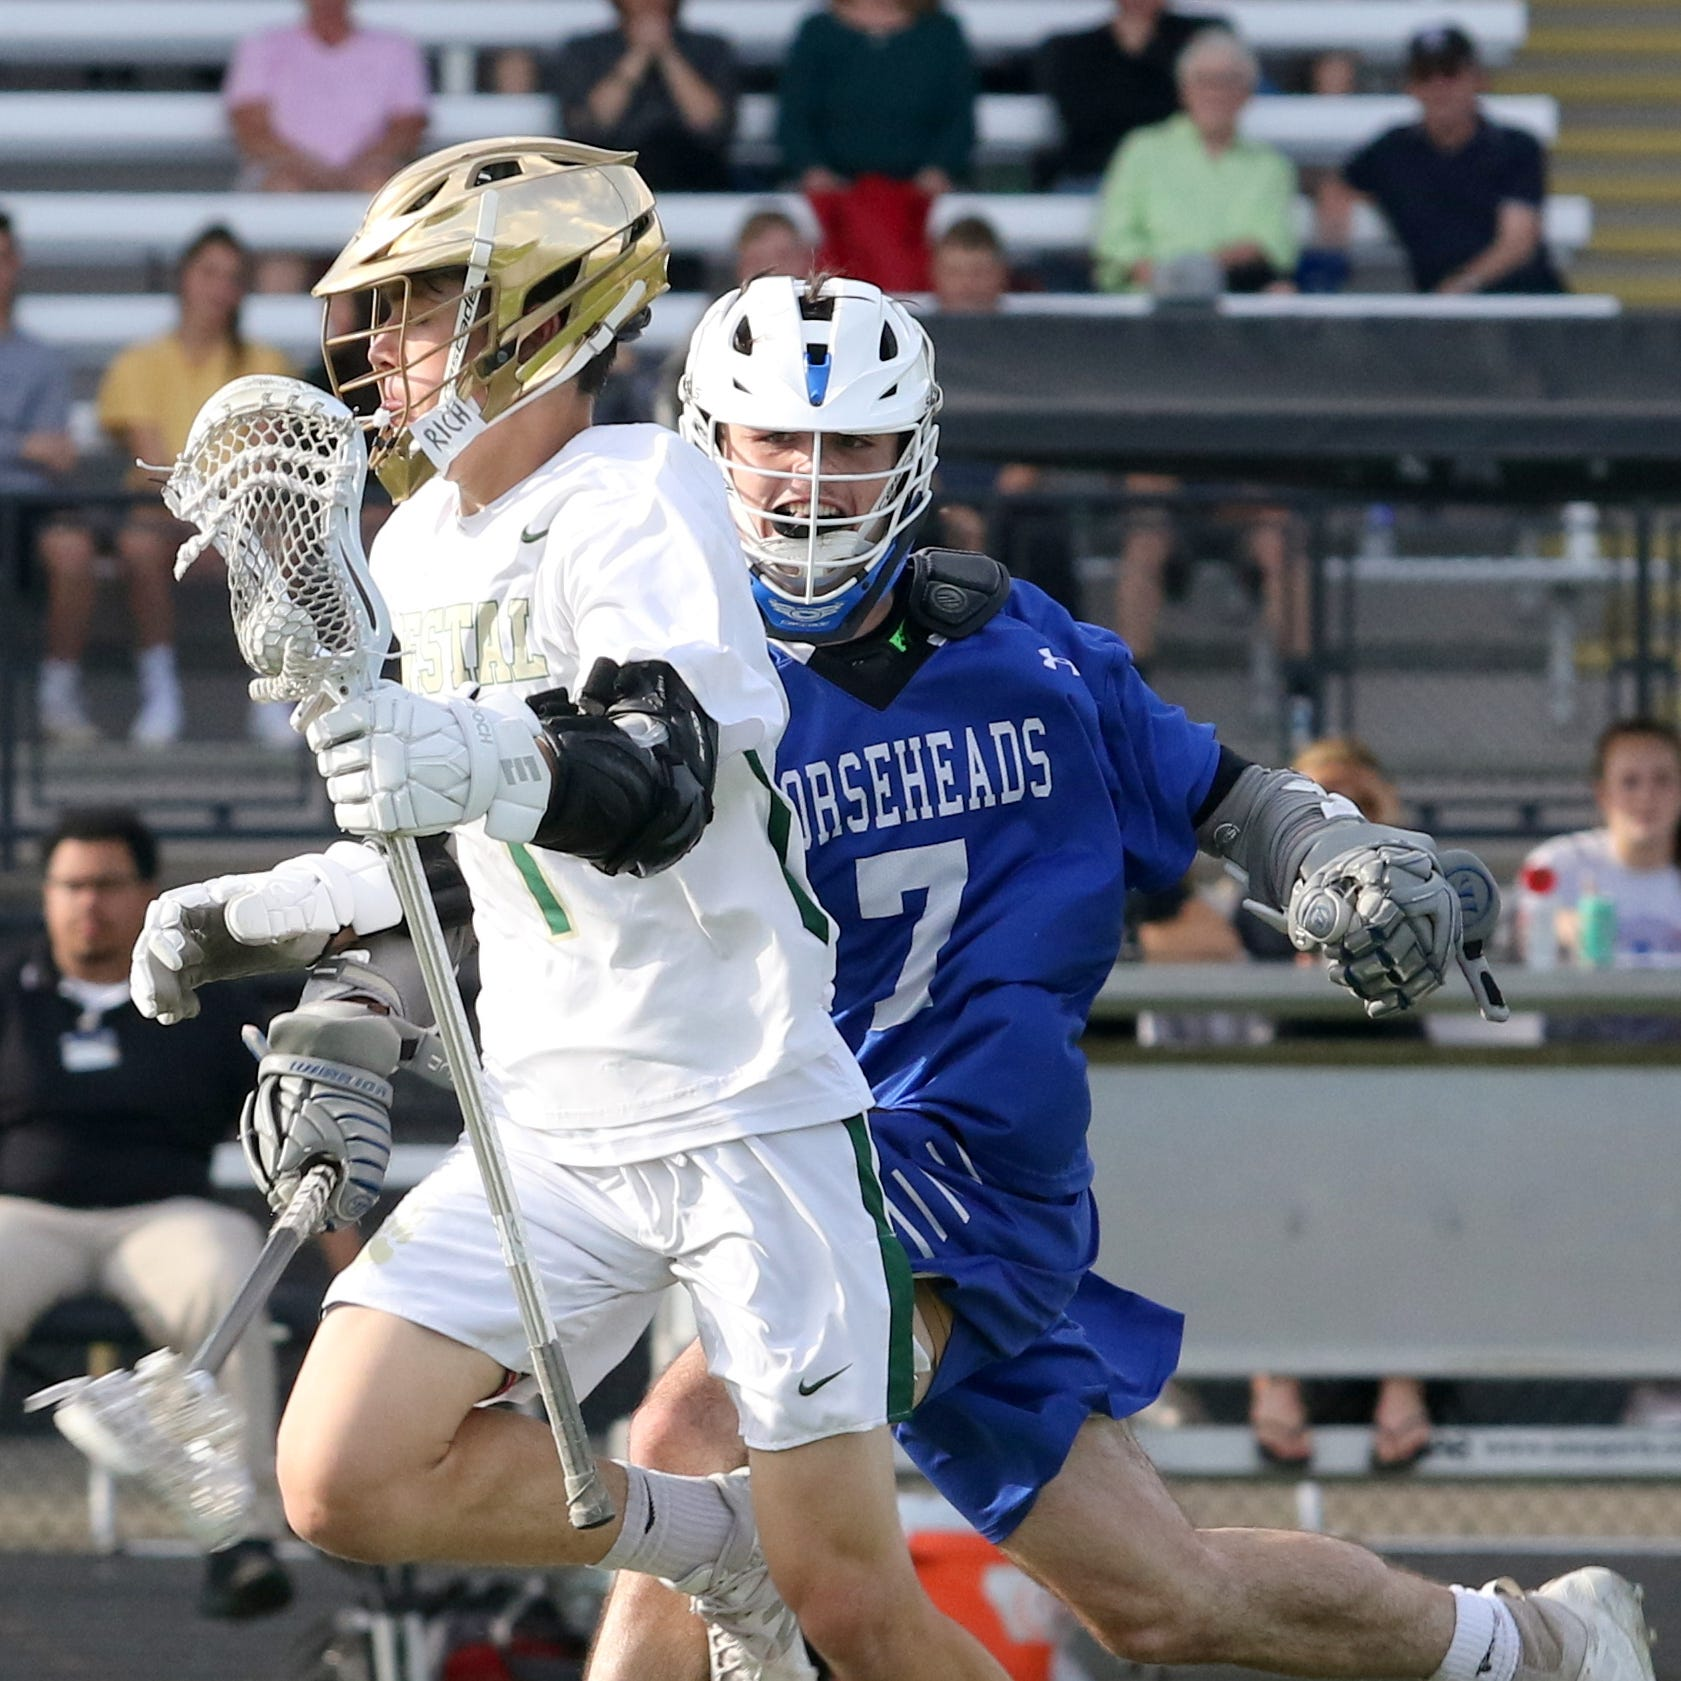 Vestal rides quick start to win over Horseheads in Class B boys lacrosse final